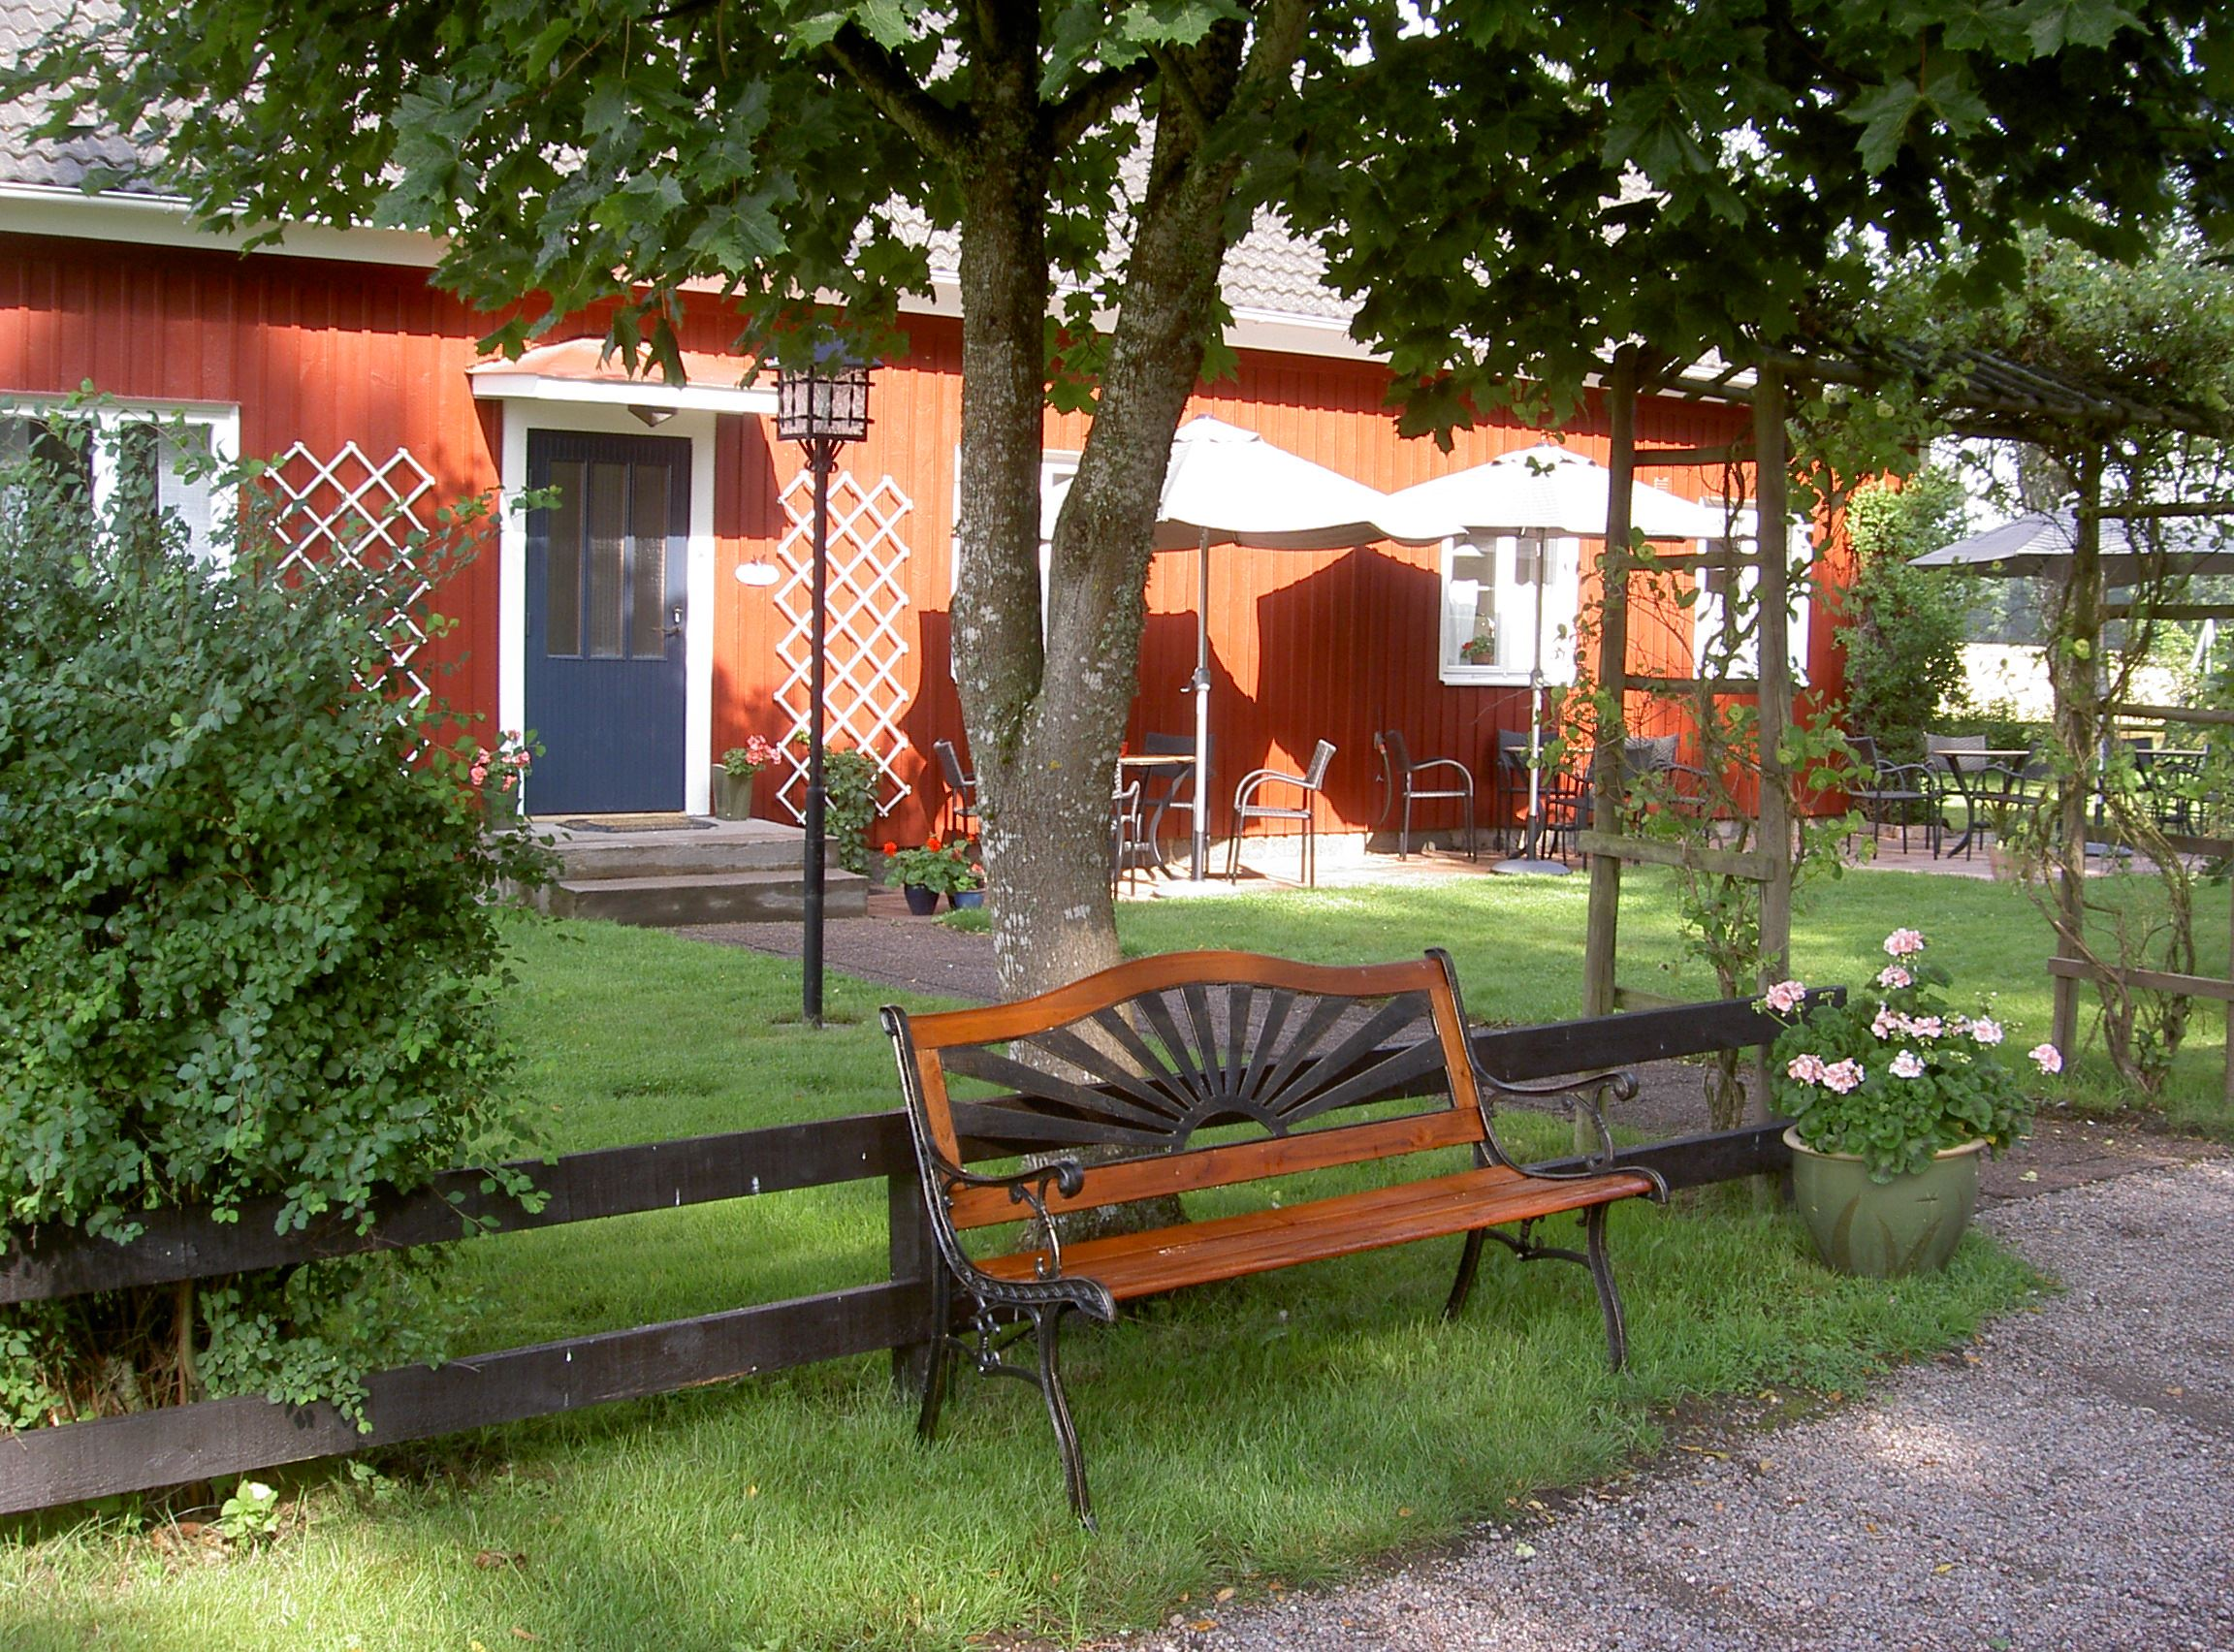 Ribbingstorp Bed & Breakfast